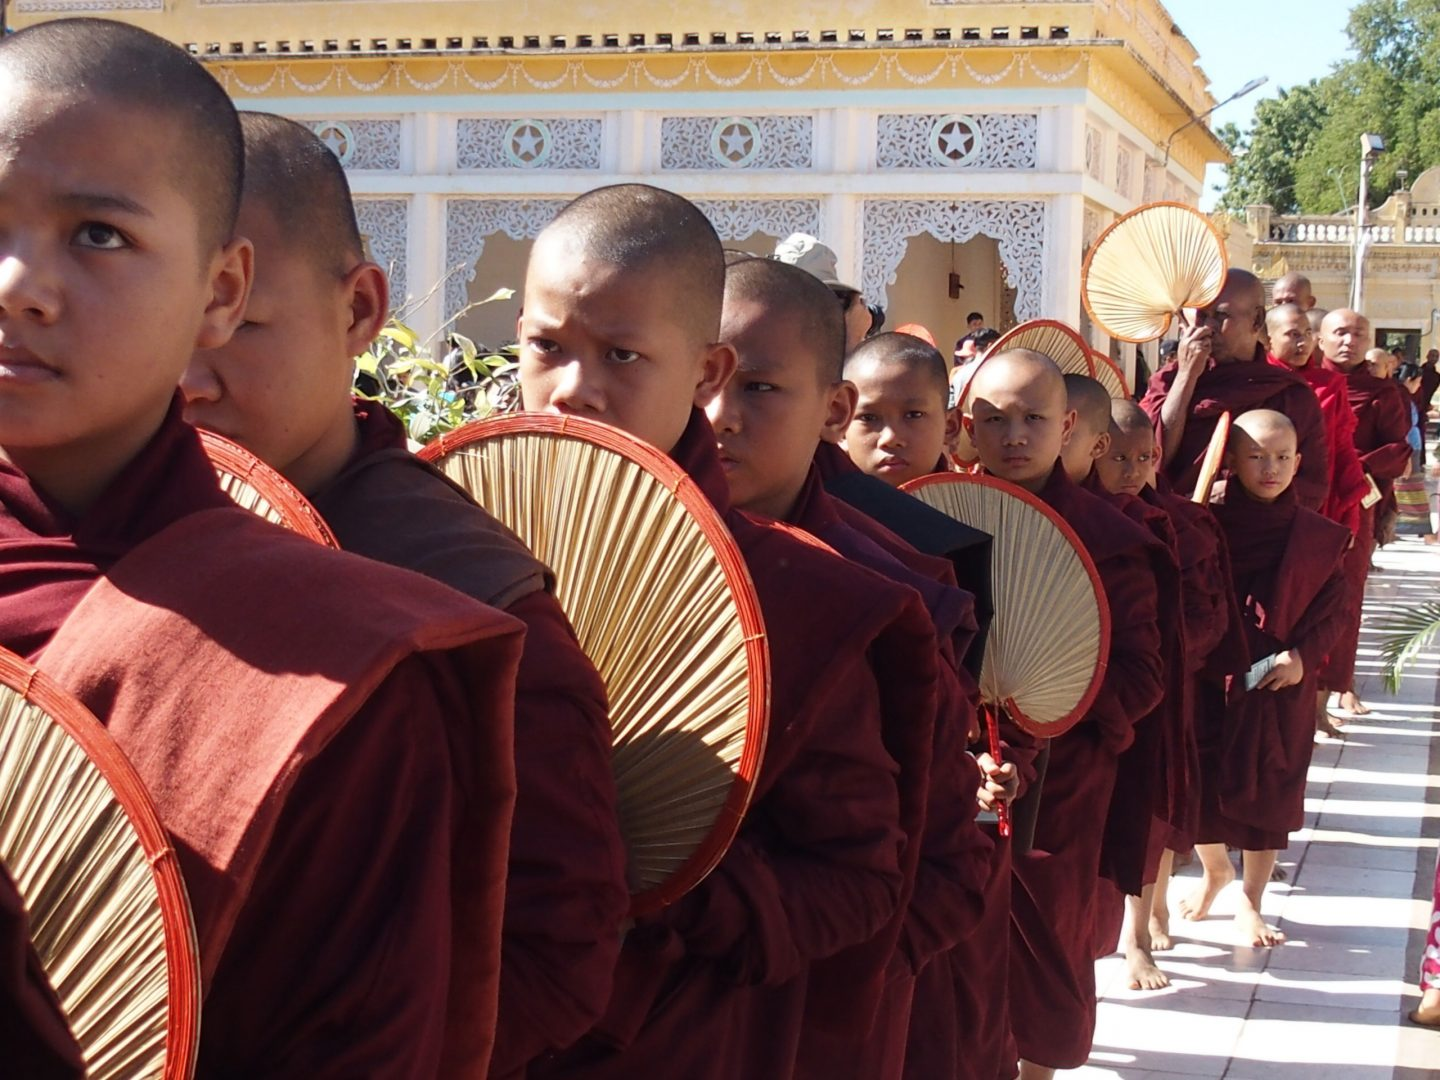 Eventails des novices pagode Shwezigon Bagan Birmanie